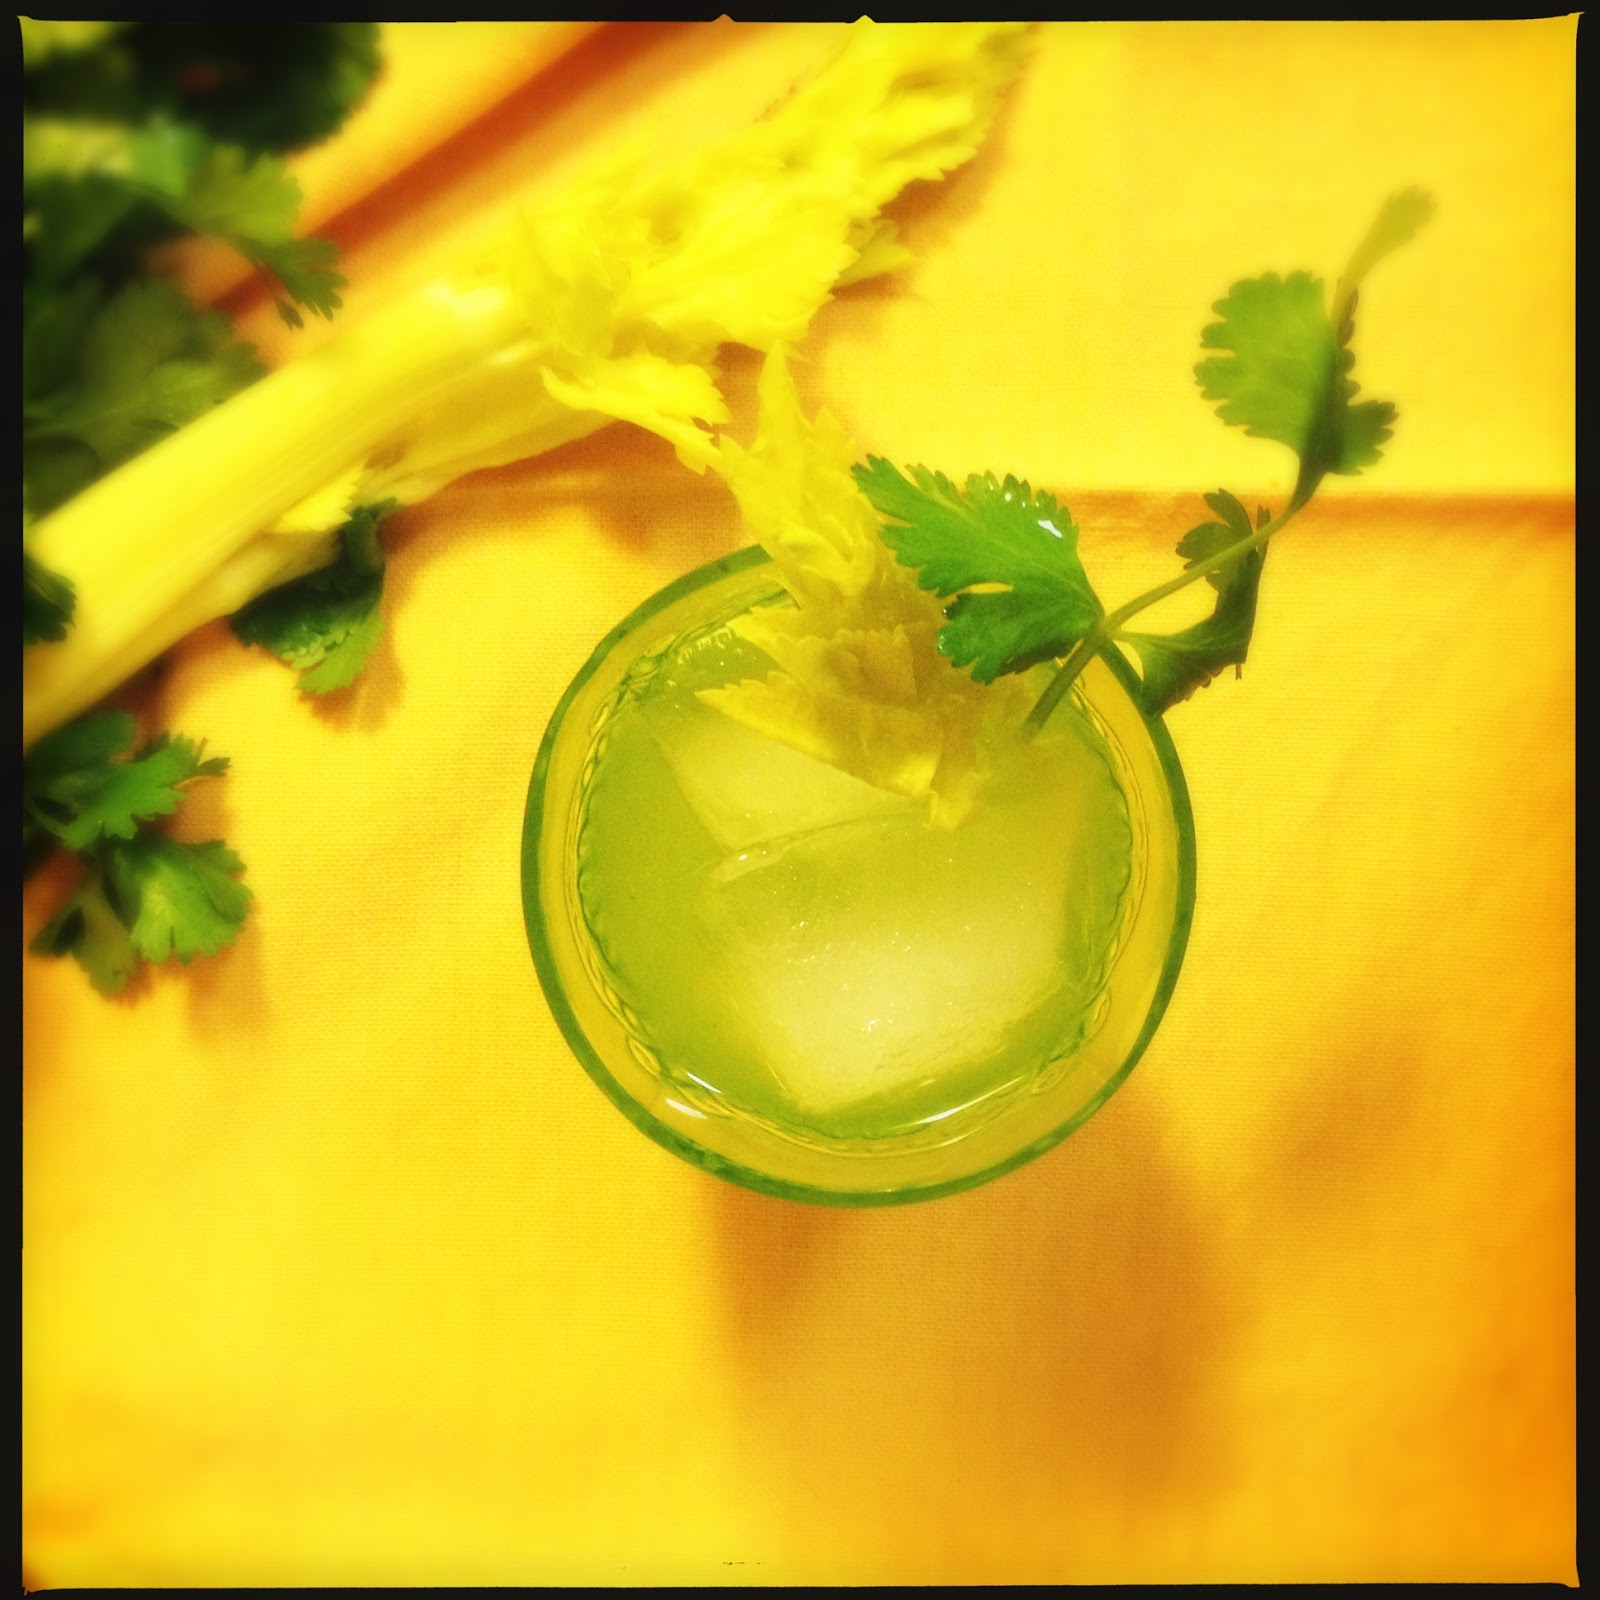 The Lush Chef: Celery & Cilantro Cocktail